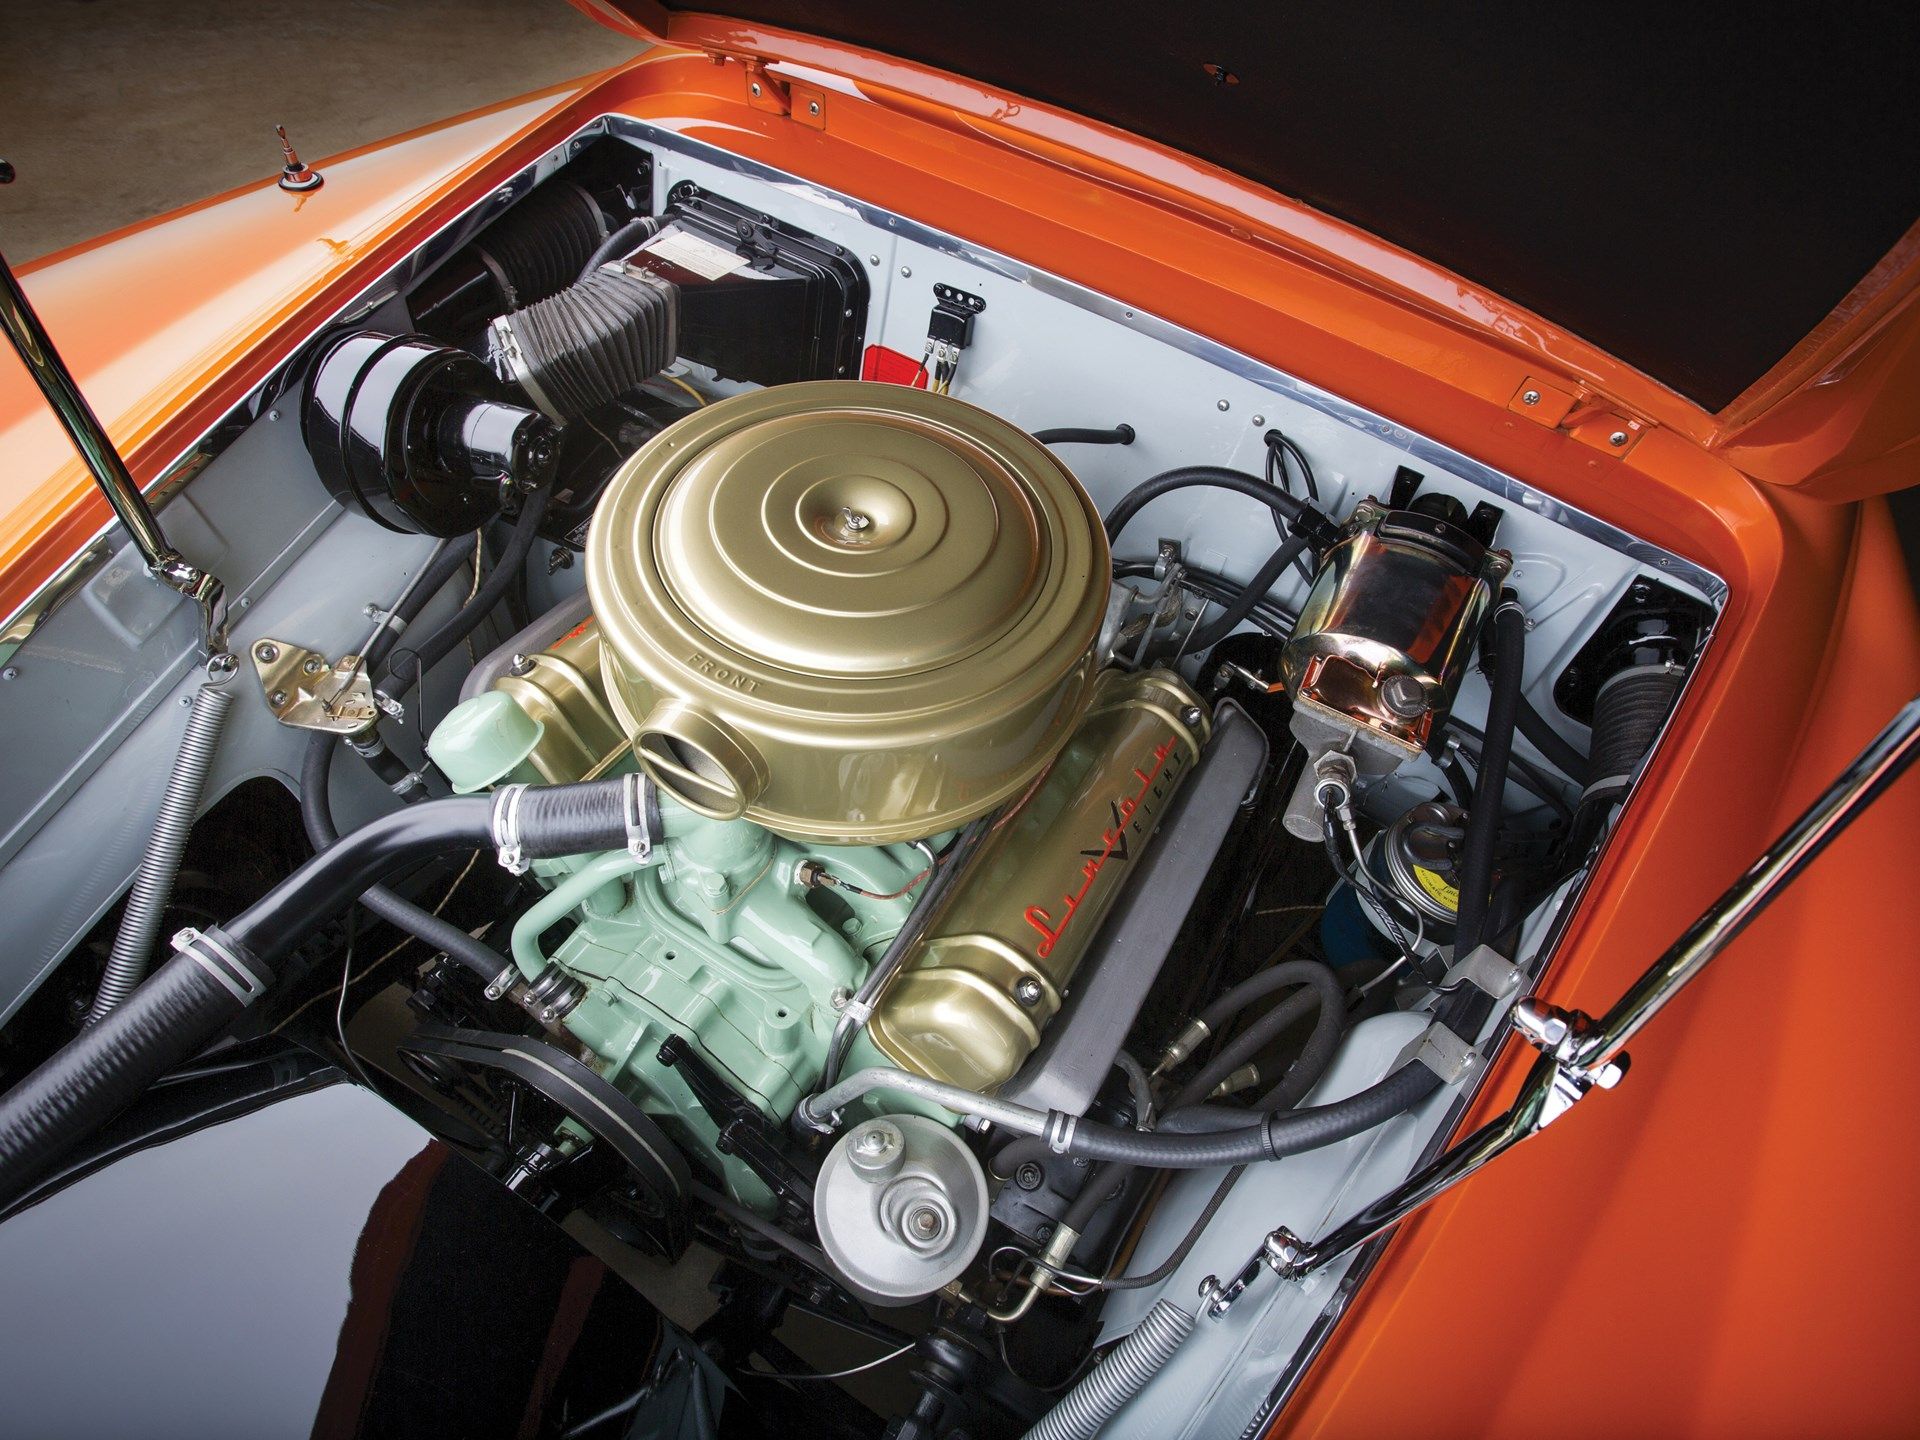 1955 Lincoln Indianapolis Exclusive Study by Boano Engine